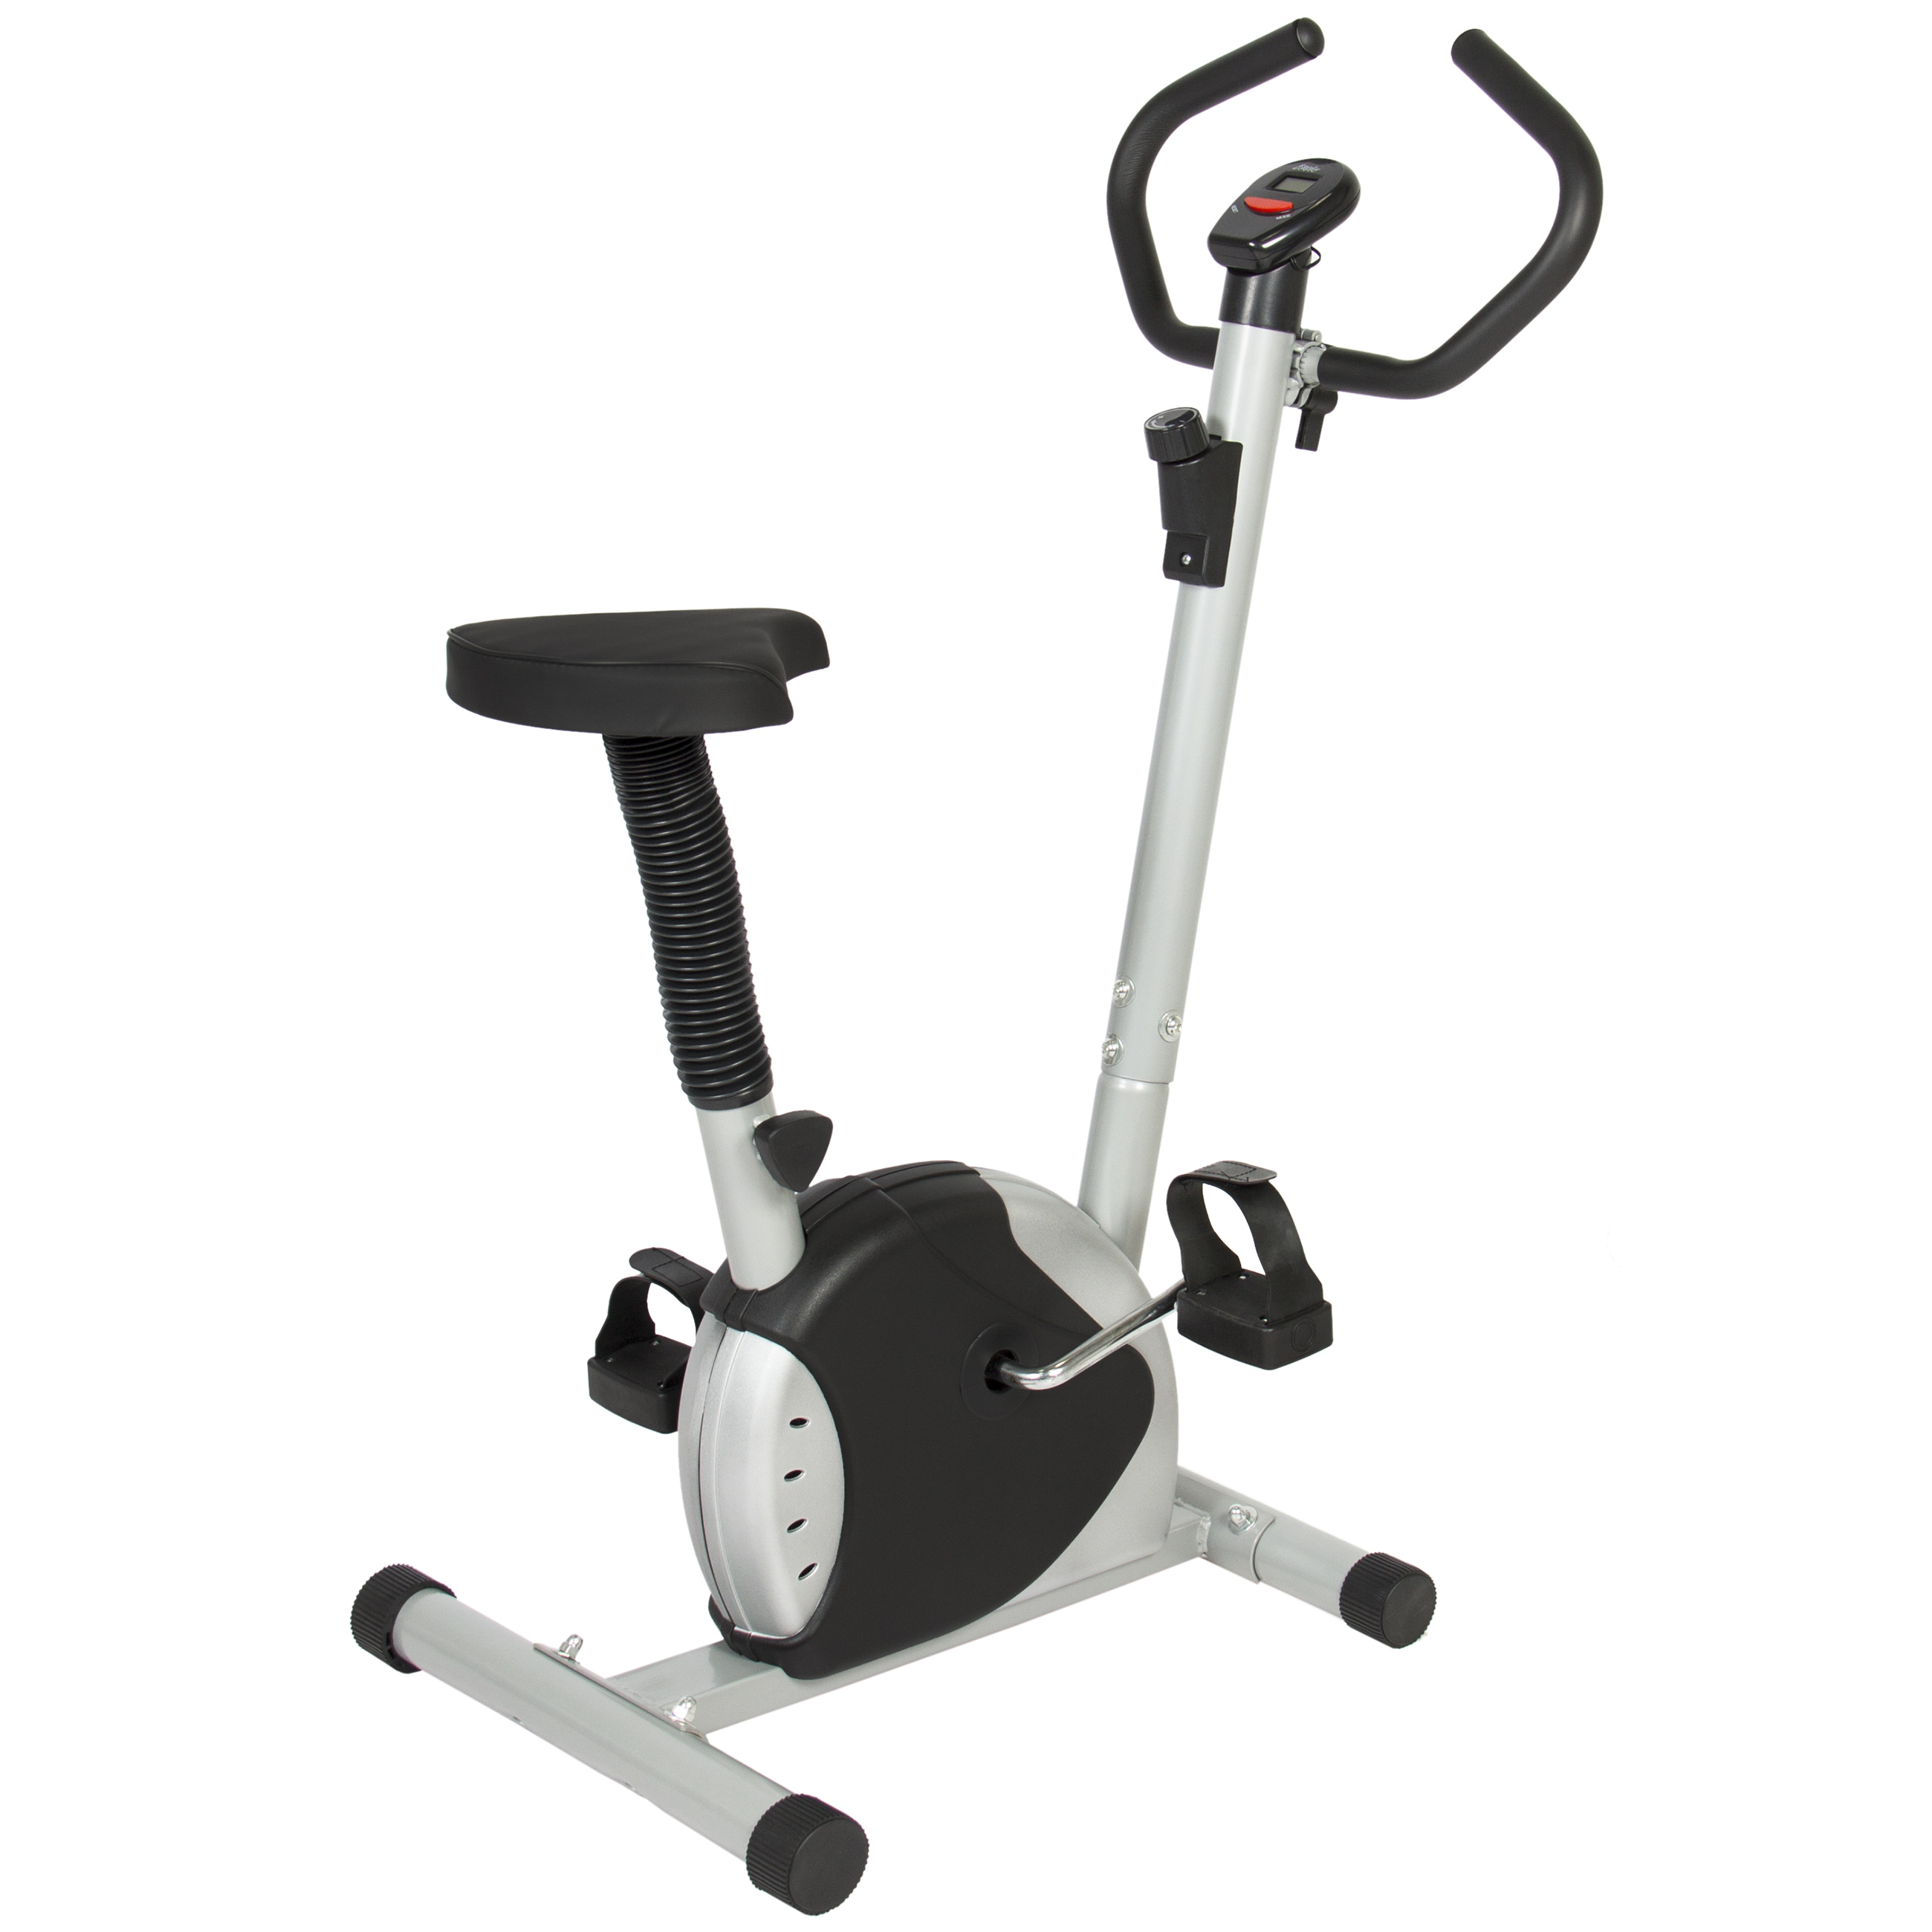 Best Choice Products Adjustable Exercise Bicycle Machine w  Resistance Adjustment Black Silver by Best Choice Products